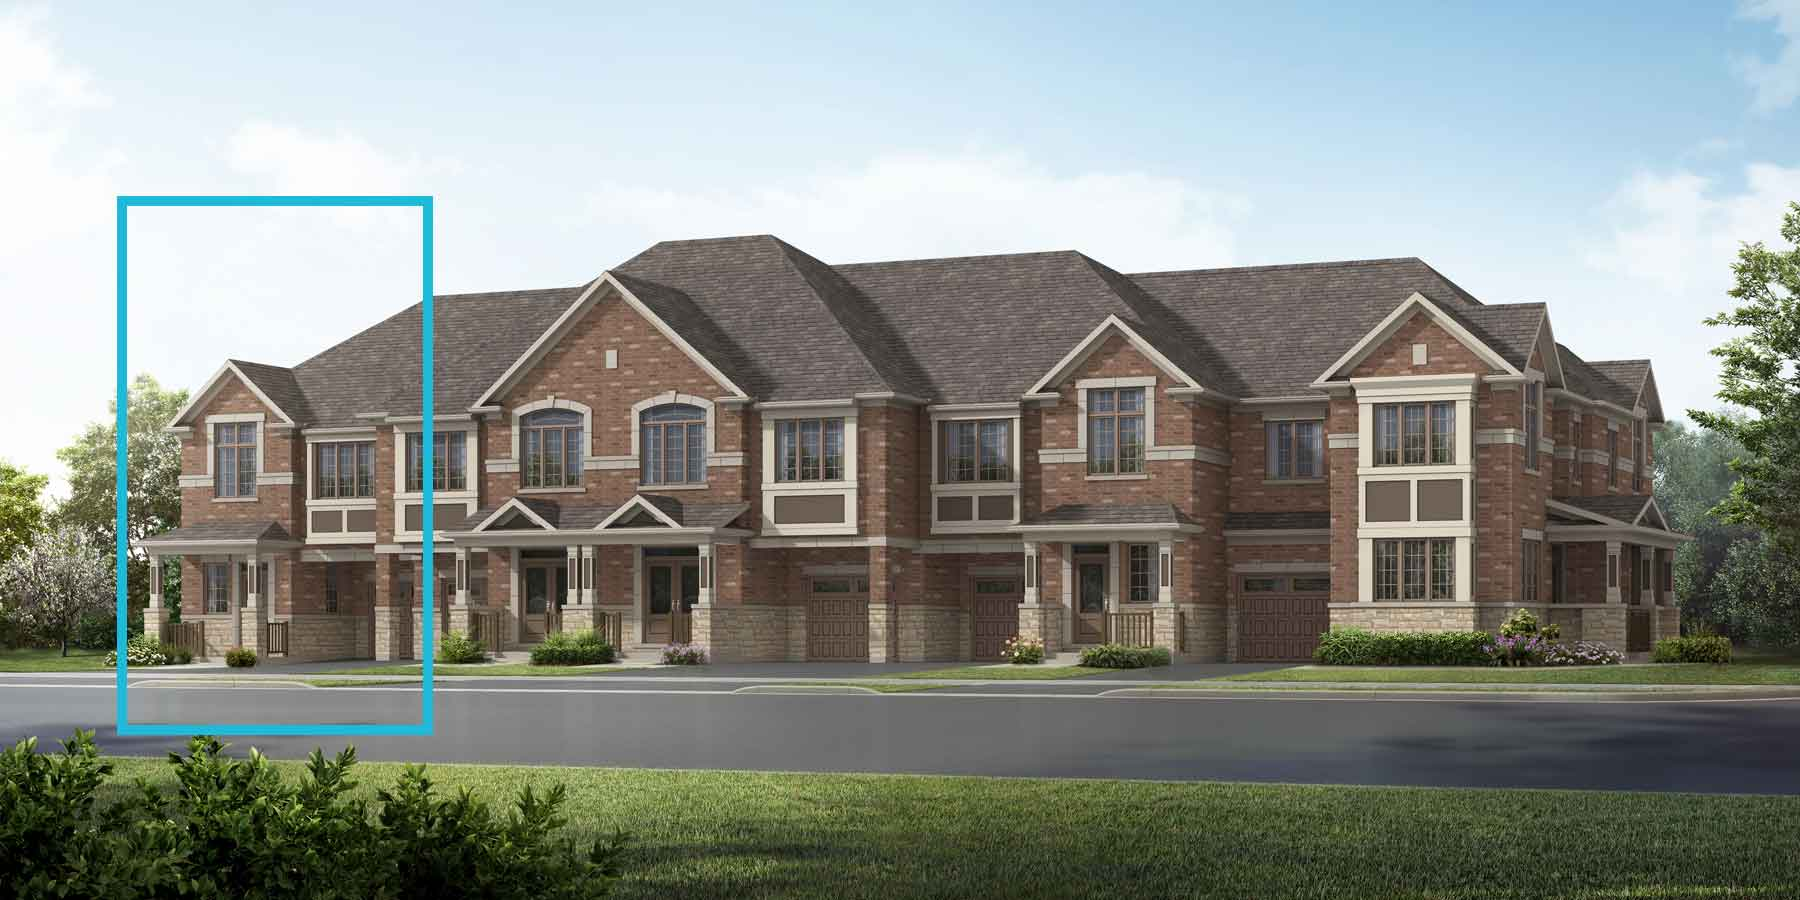 Mint End Plan traditional_springwater_mintend at Springwater in Markham Ontario by Mattamy Homes